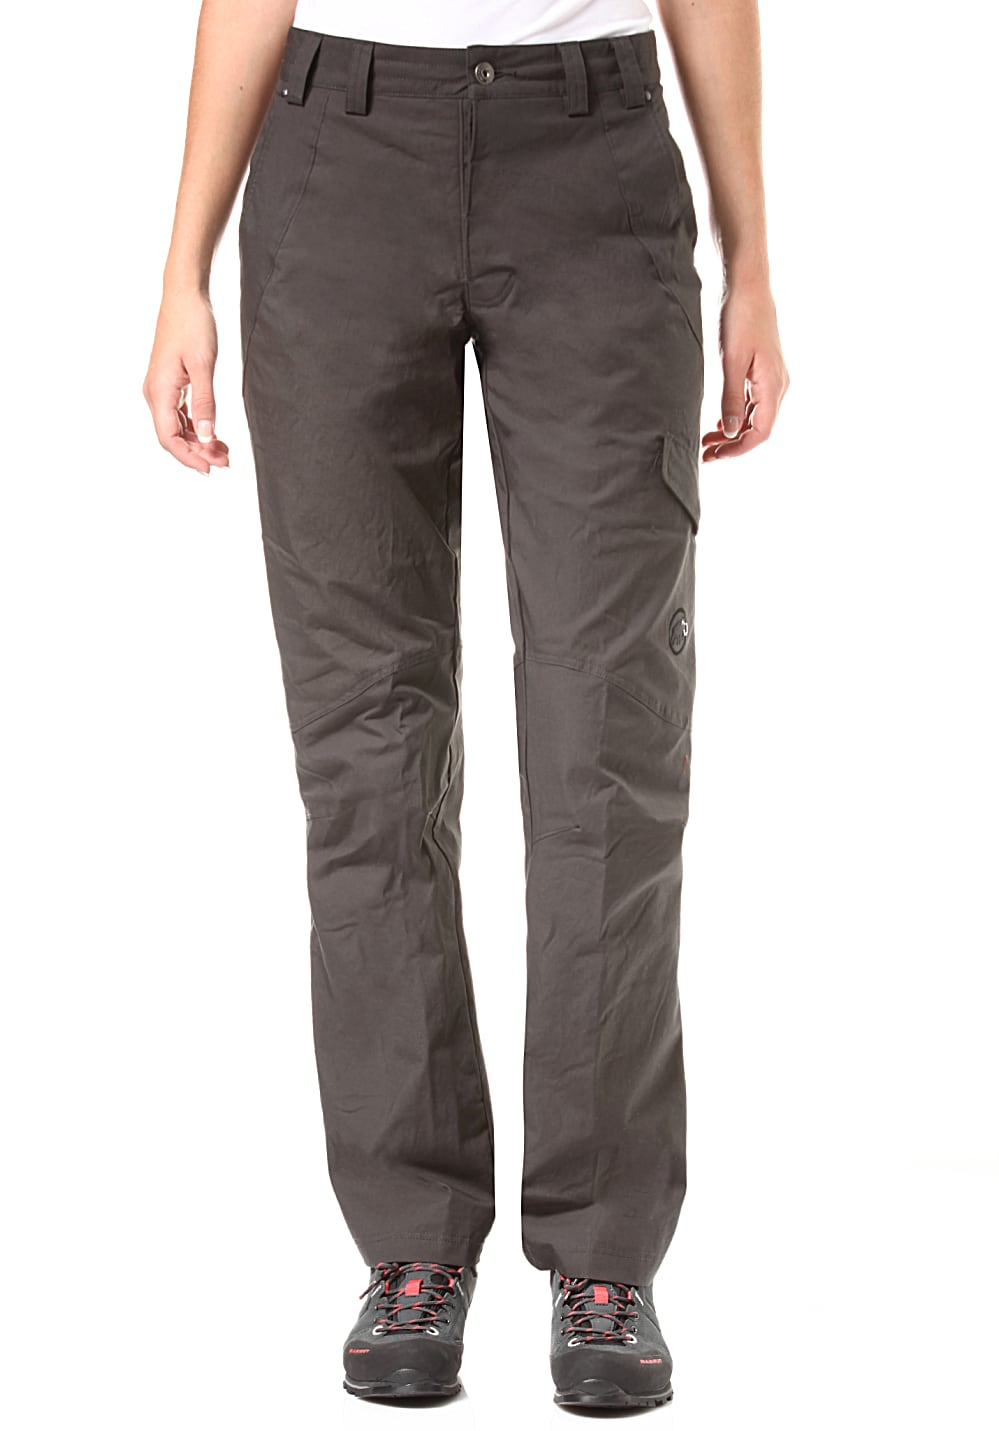 Mammut Trovat Advanced - Outdoorhose für Damen - Grau